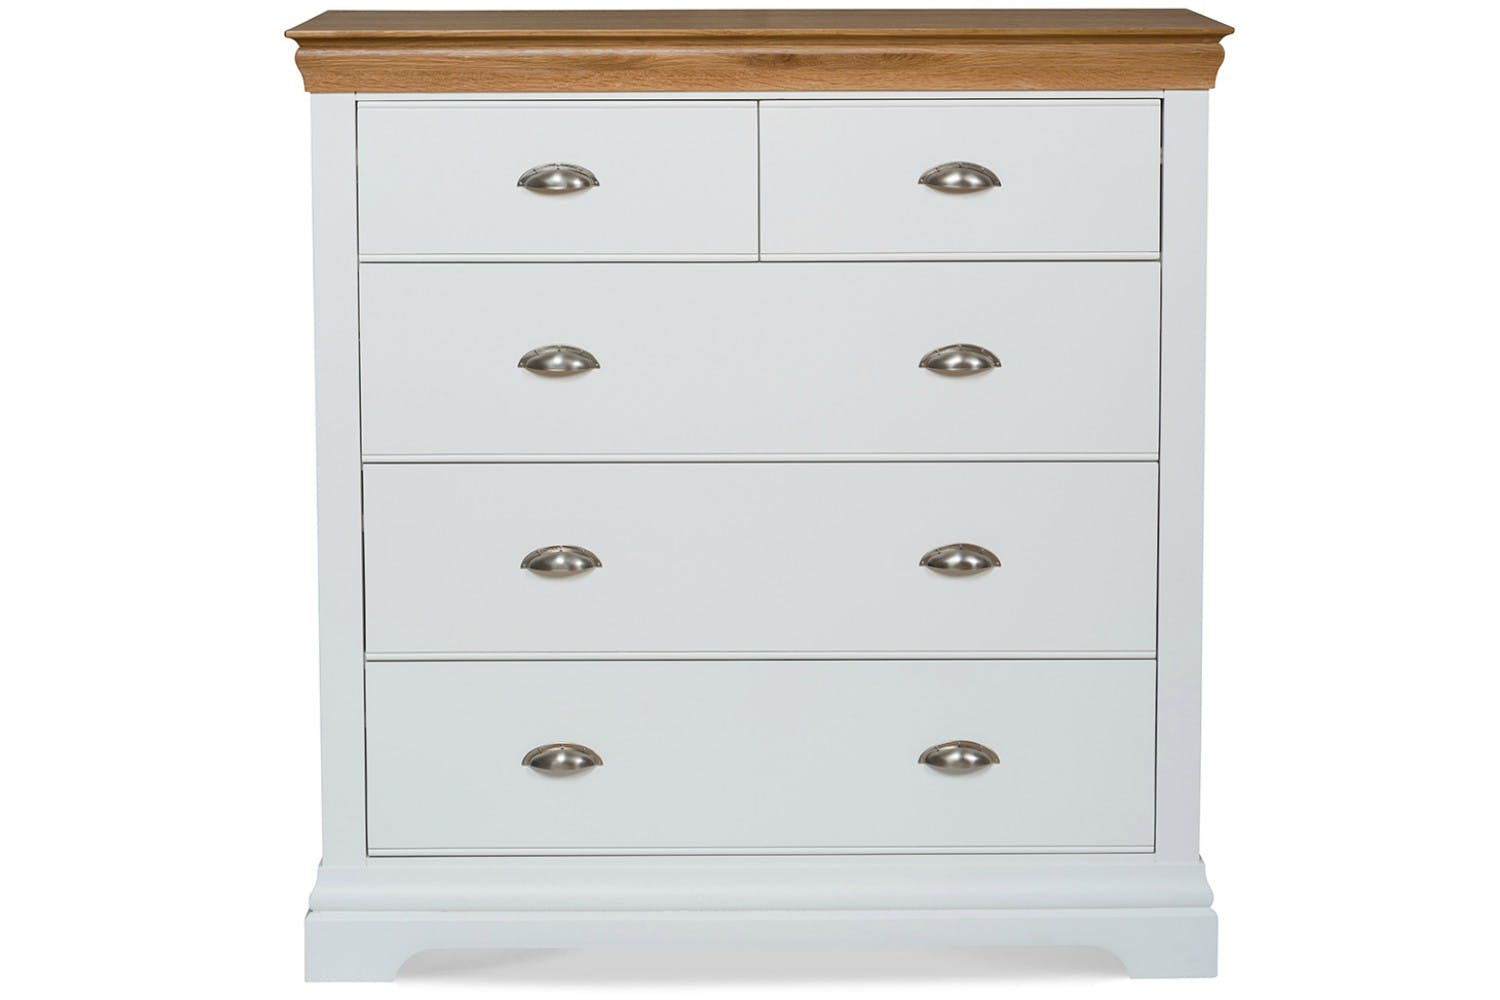 Ascott 3 2 drawer chest angel white ireland for Bedroom furniture chest of drawers